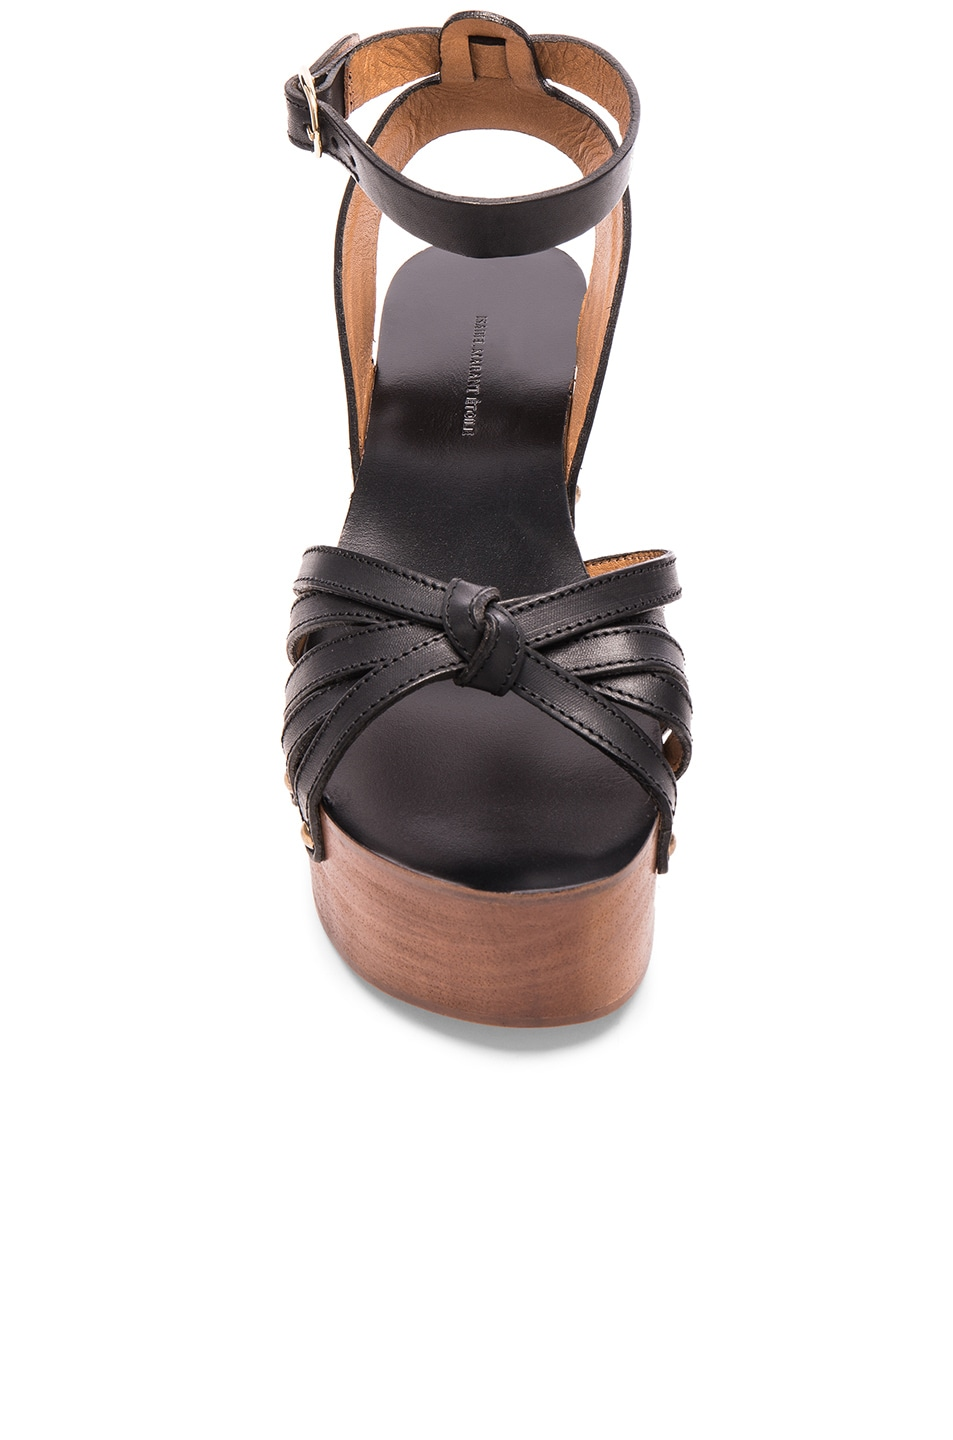 467deb8f6a6 Image 4 of Isabel Marant Etoile Zia Leather Wedge Sandals in Black